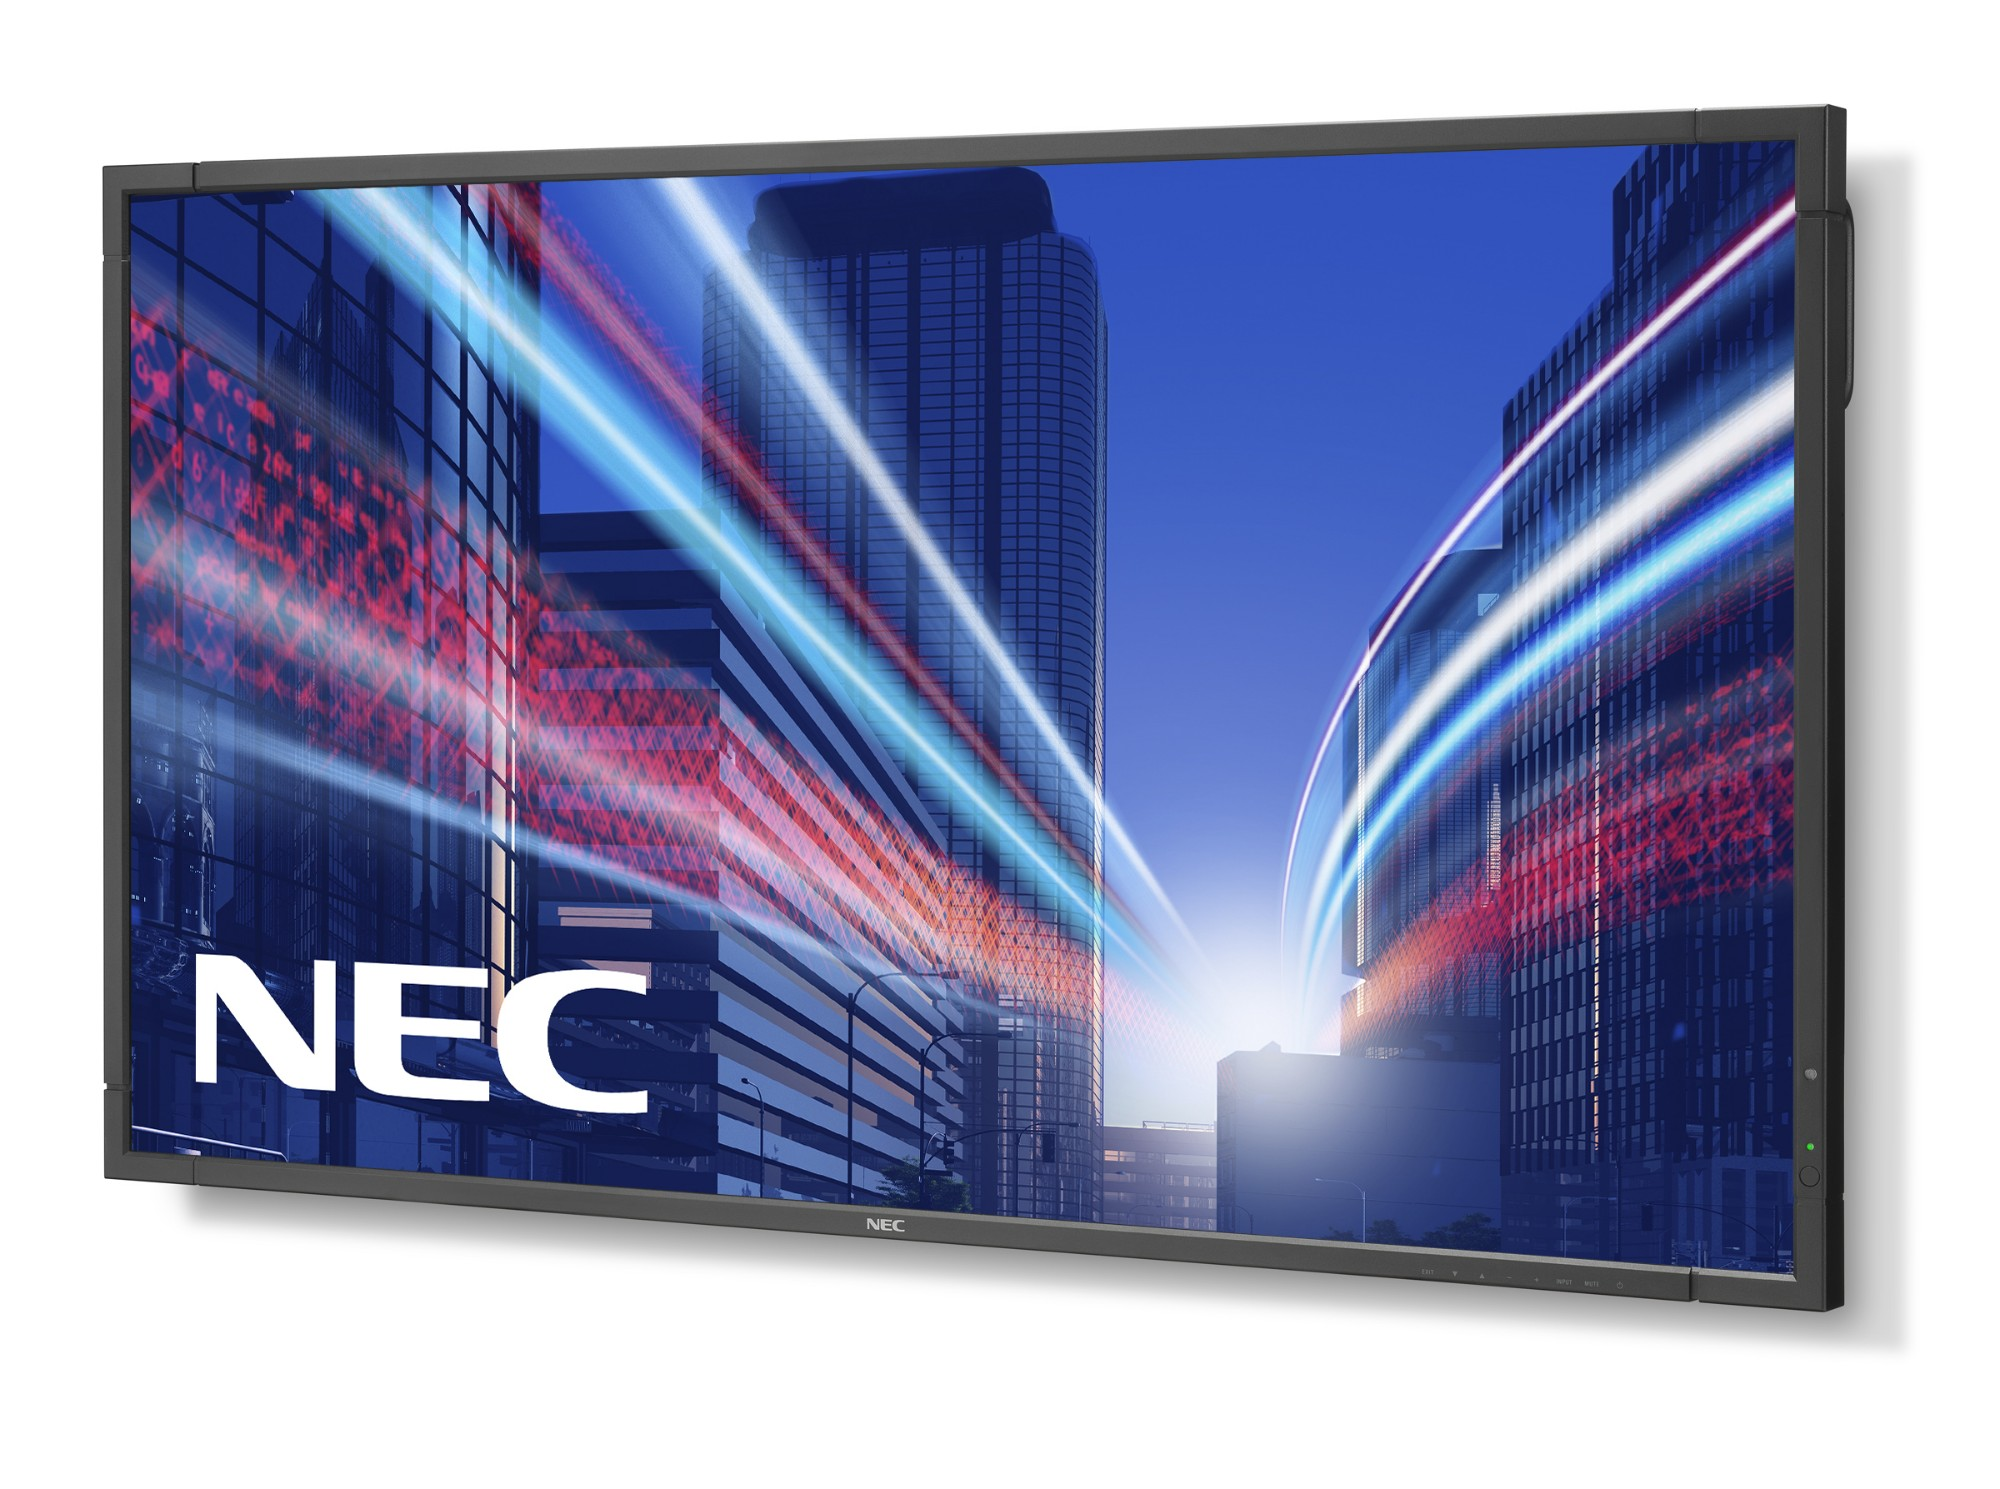 Professional-grade Large Screen Display With Integrated Computer P403 40in LED 1920x1080 Black